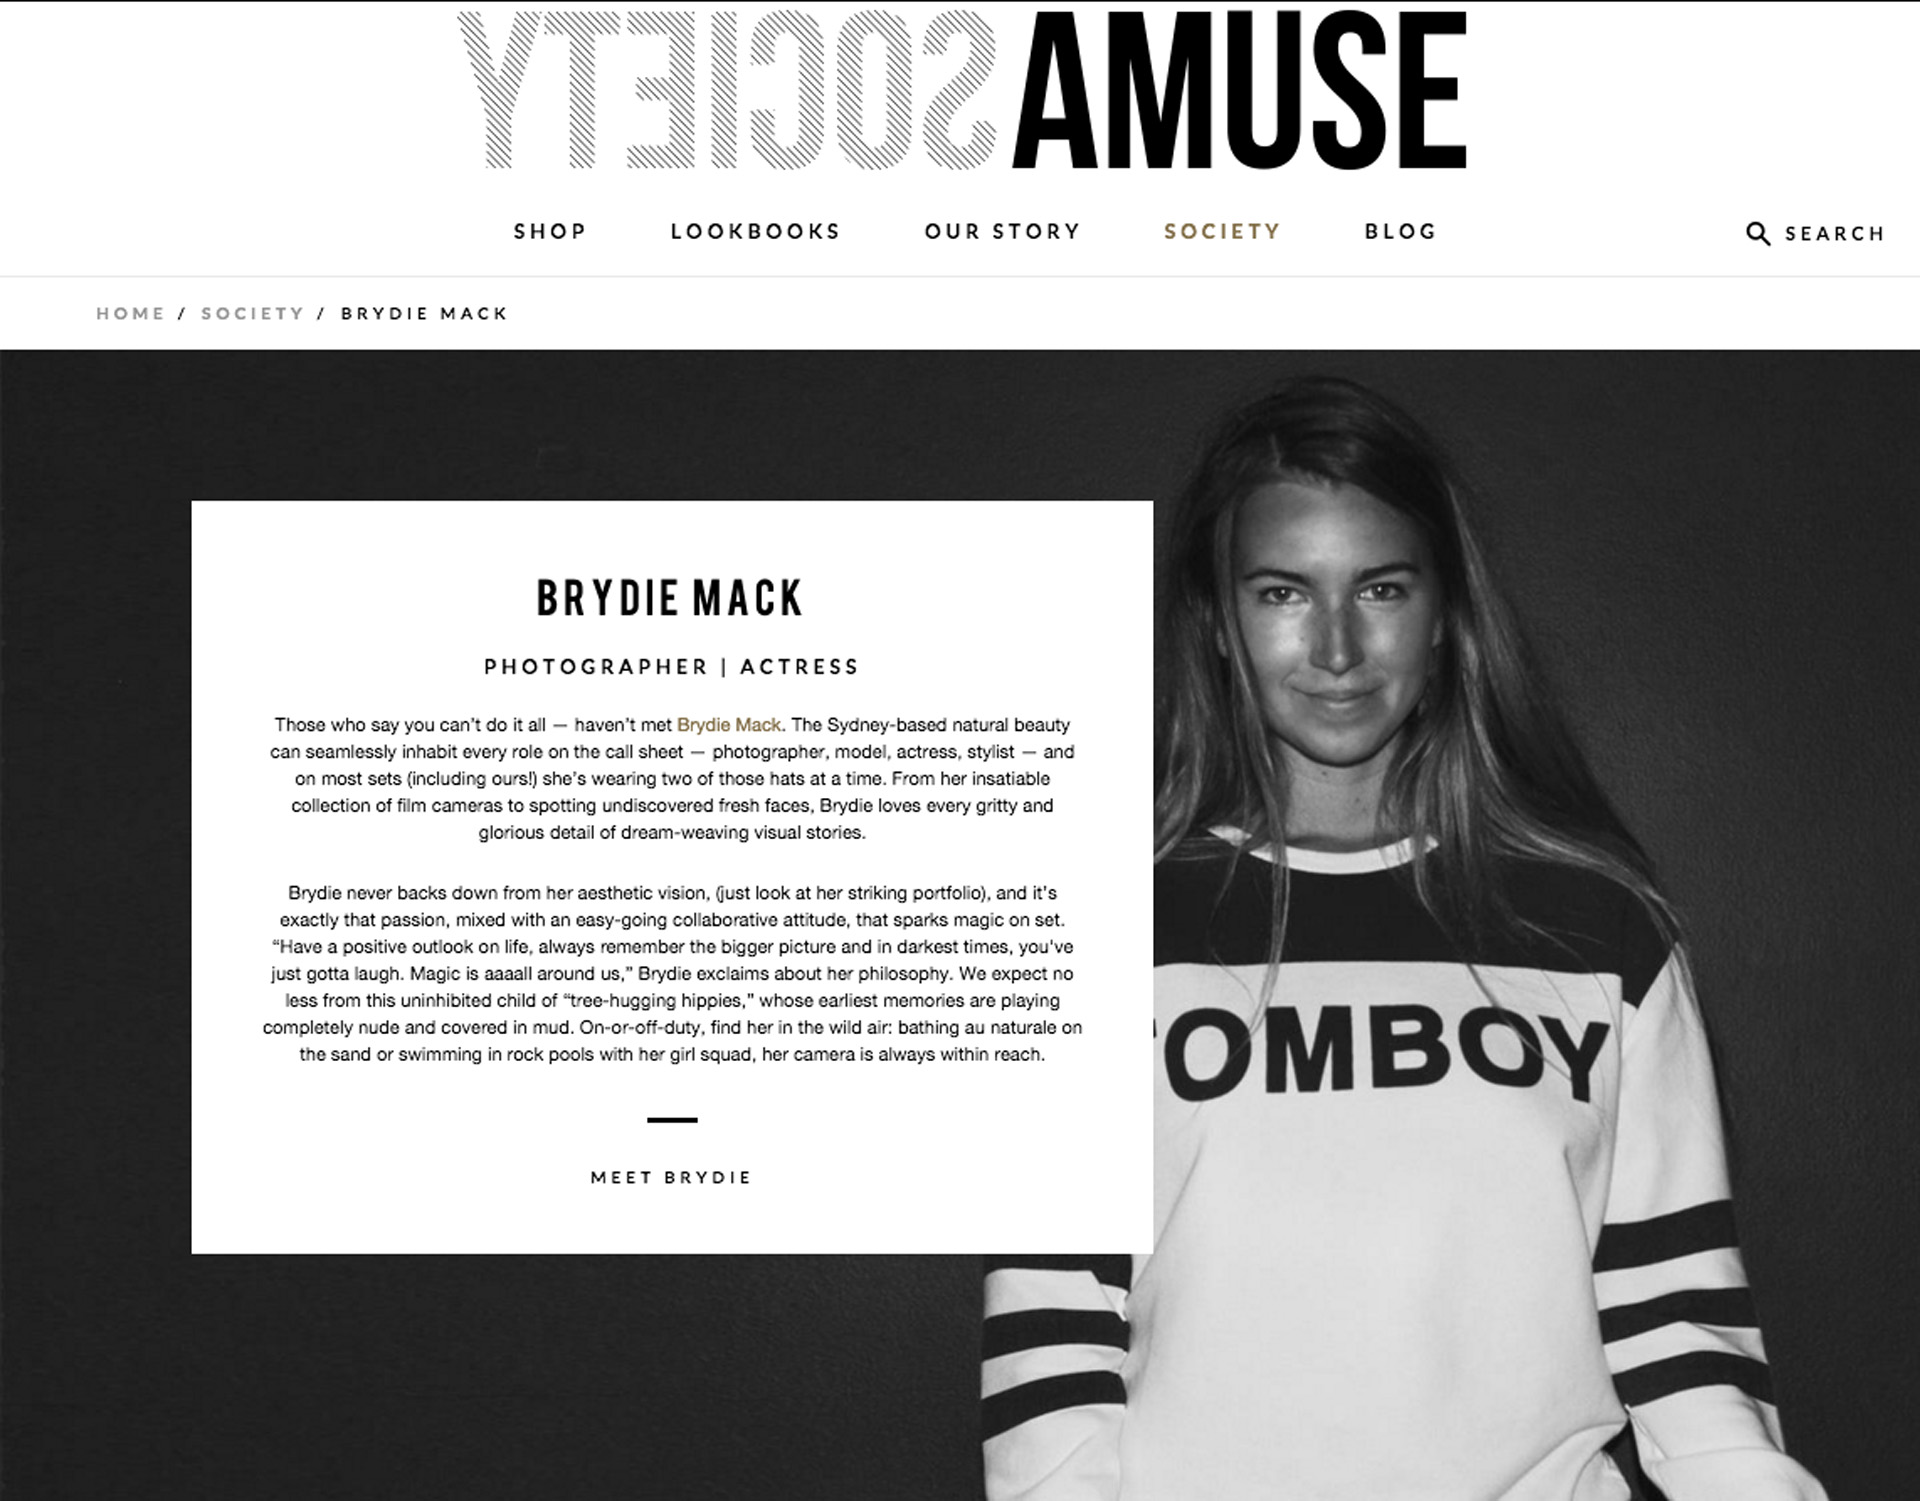 Amuse Society - Brydie Mack